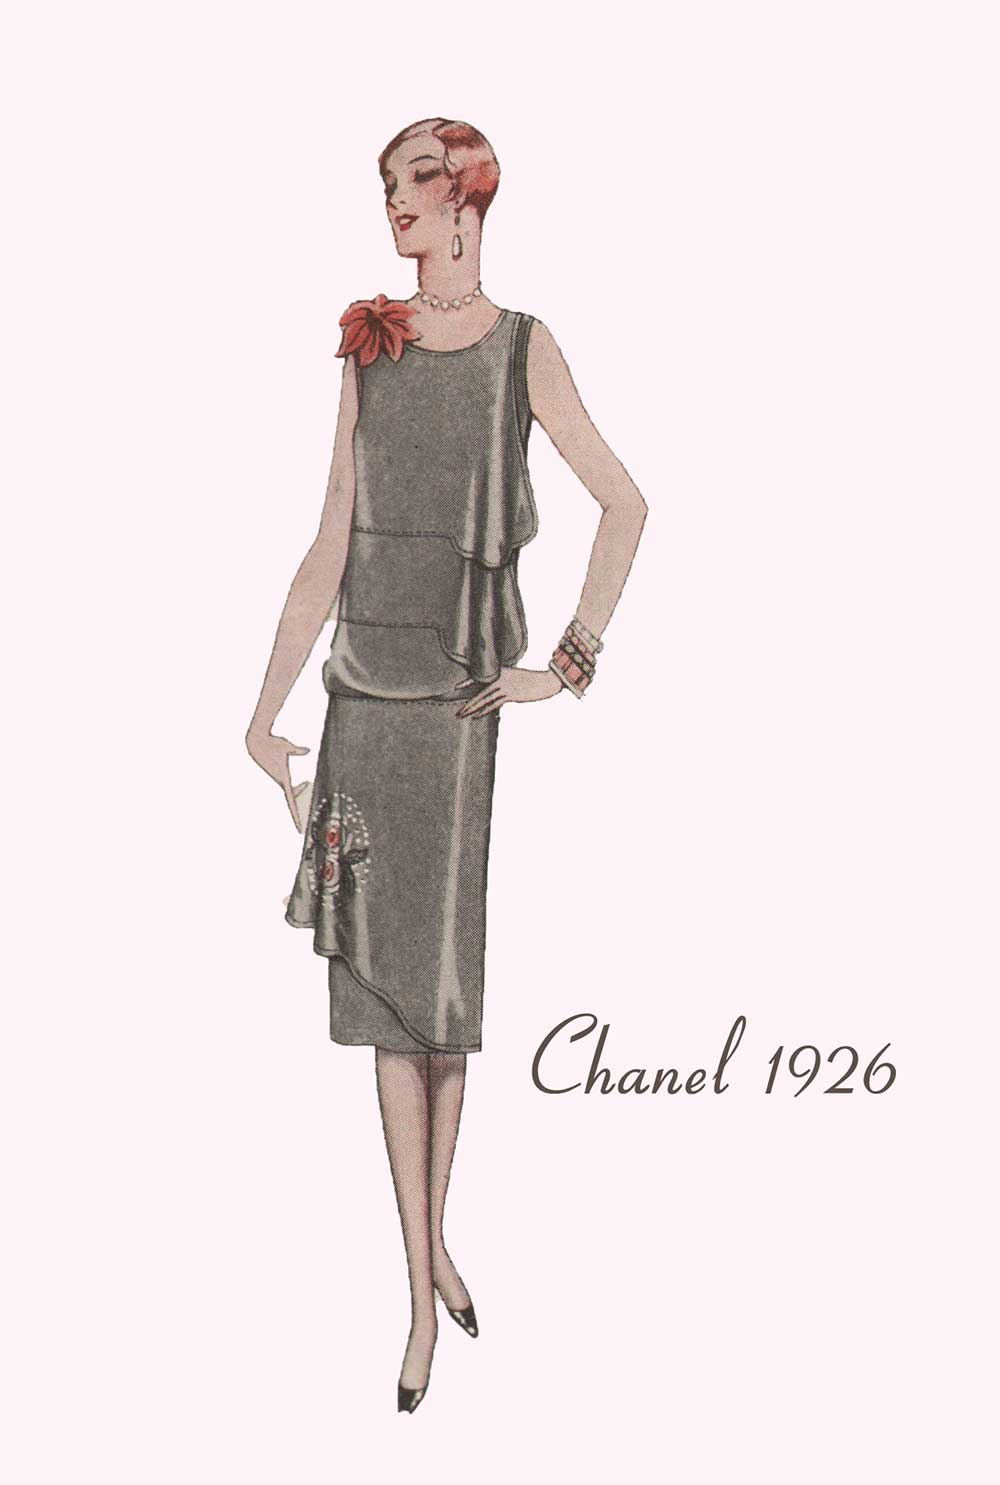 Fashion-News-1920s---Evening-Frocks-for-1926-Chanel